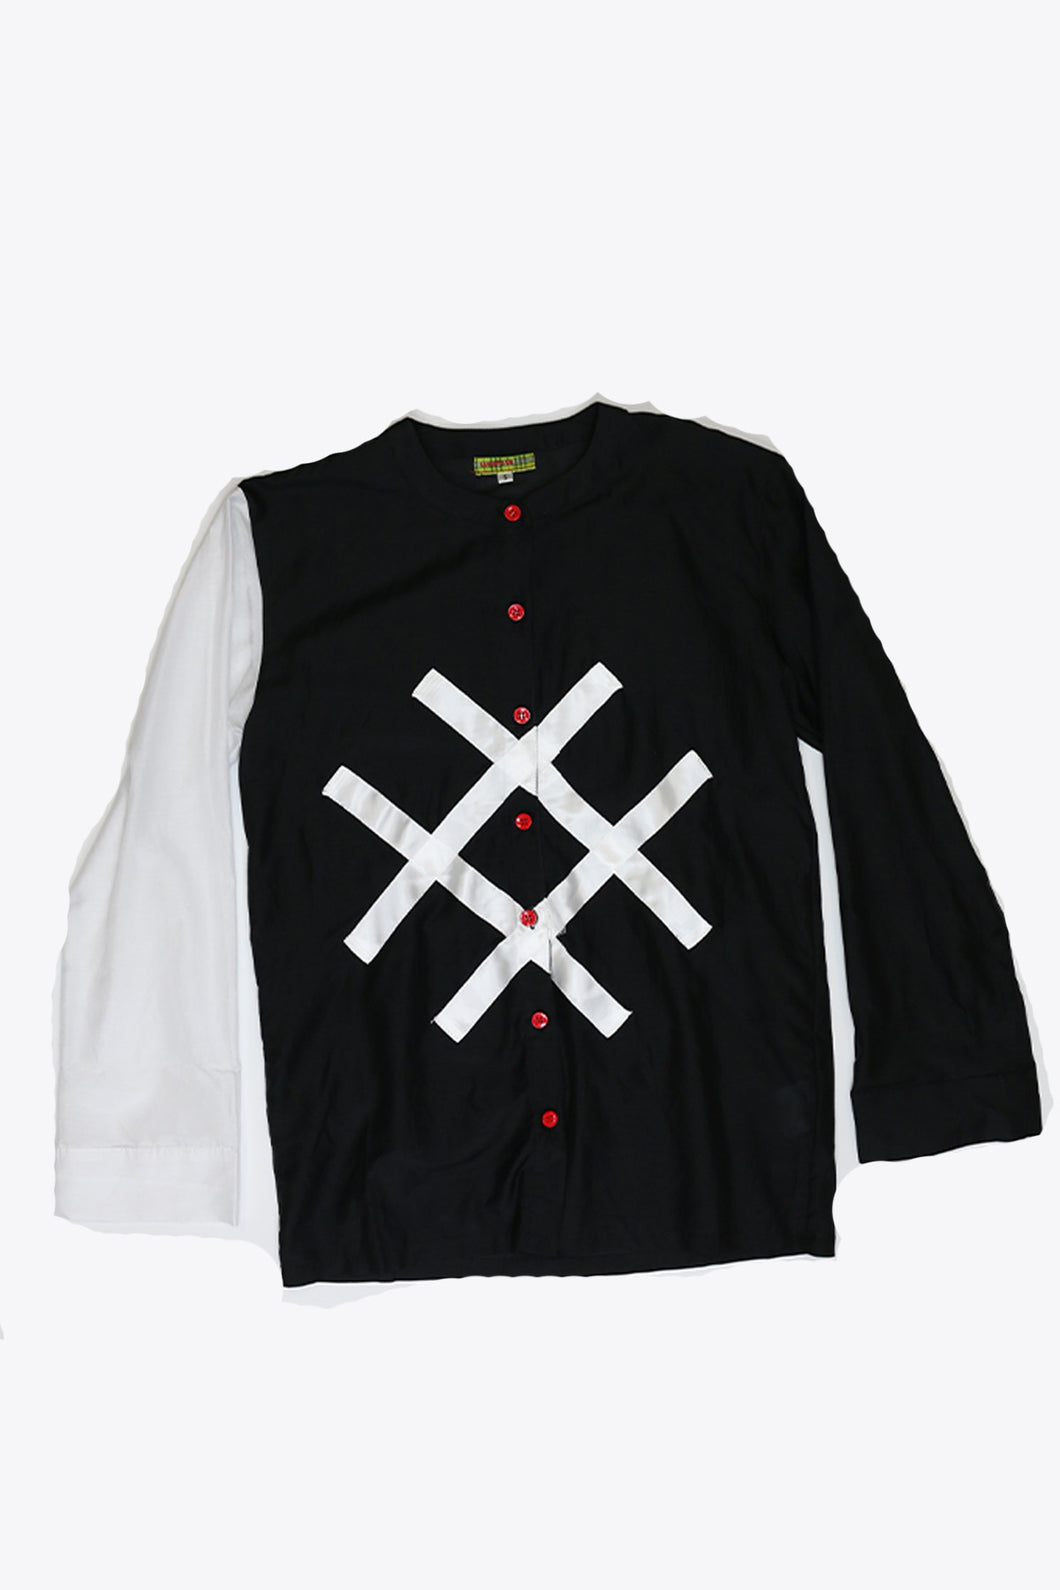 Logo Button Shirt Black